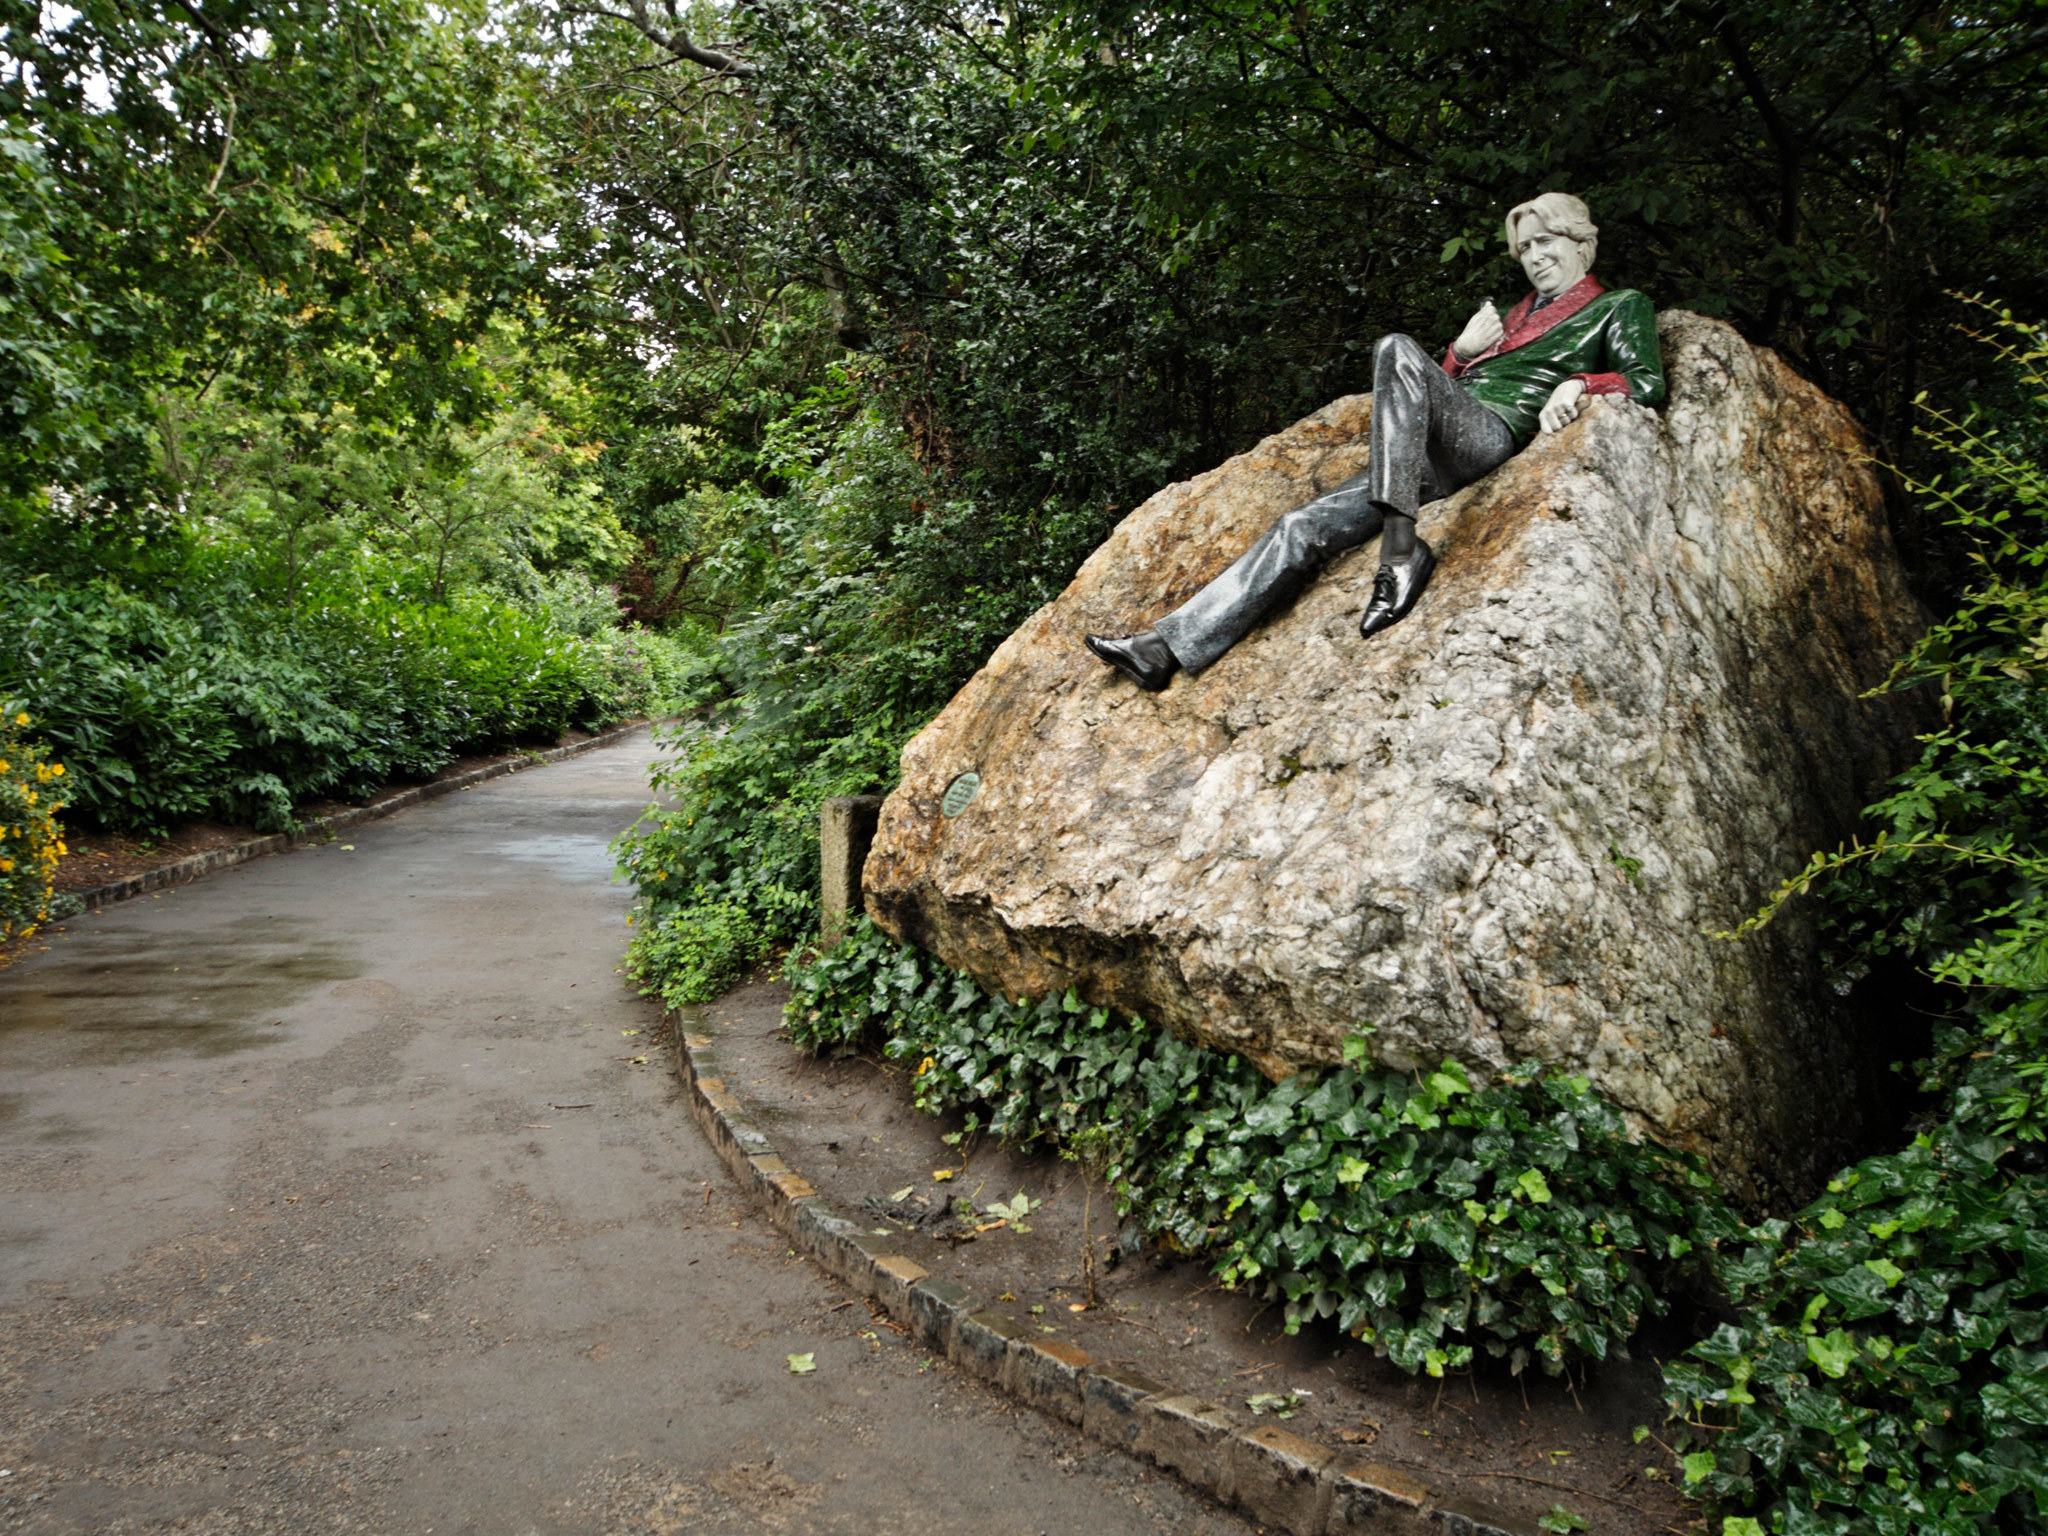 The Oscar Wilde statue in Merrion Square park